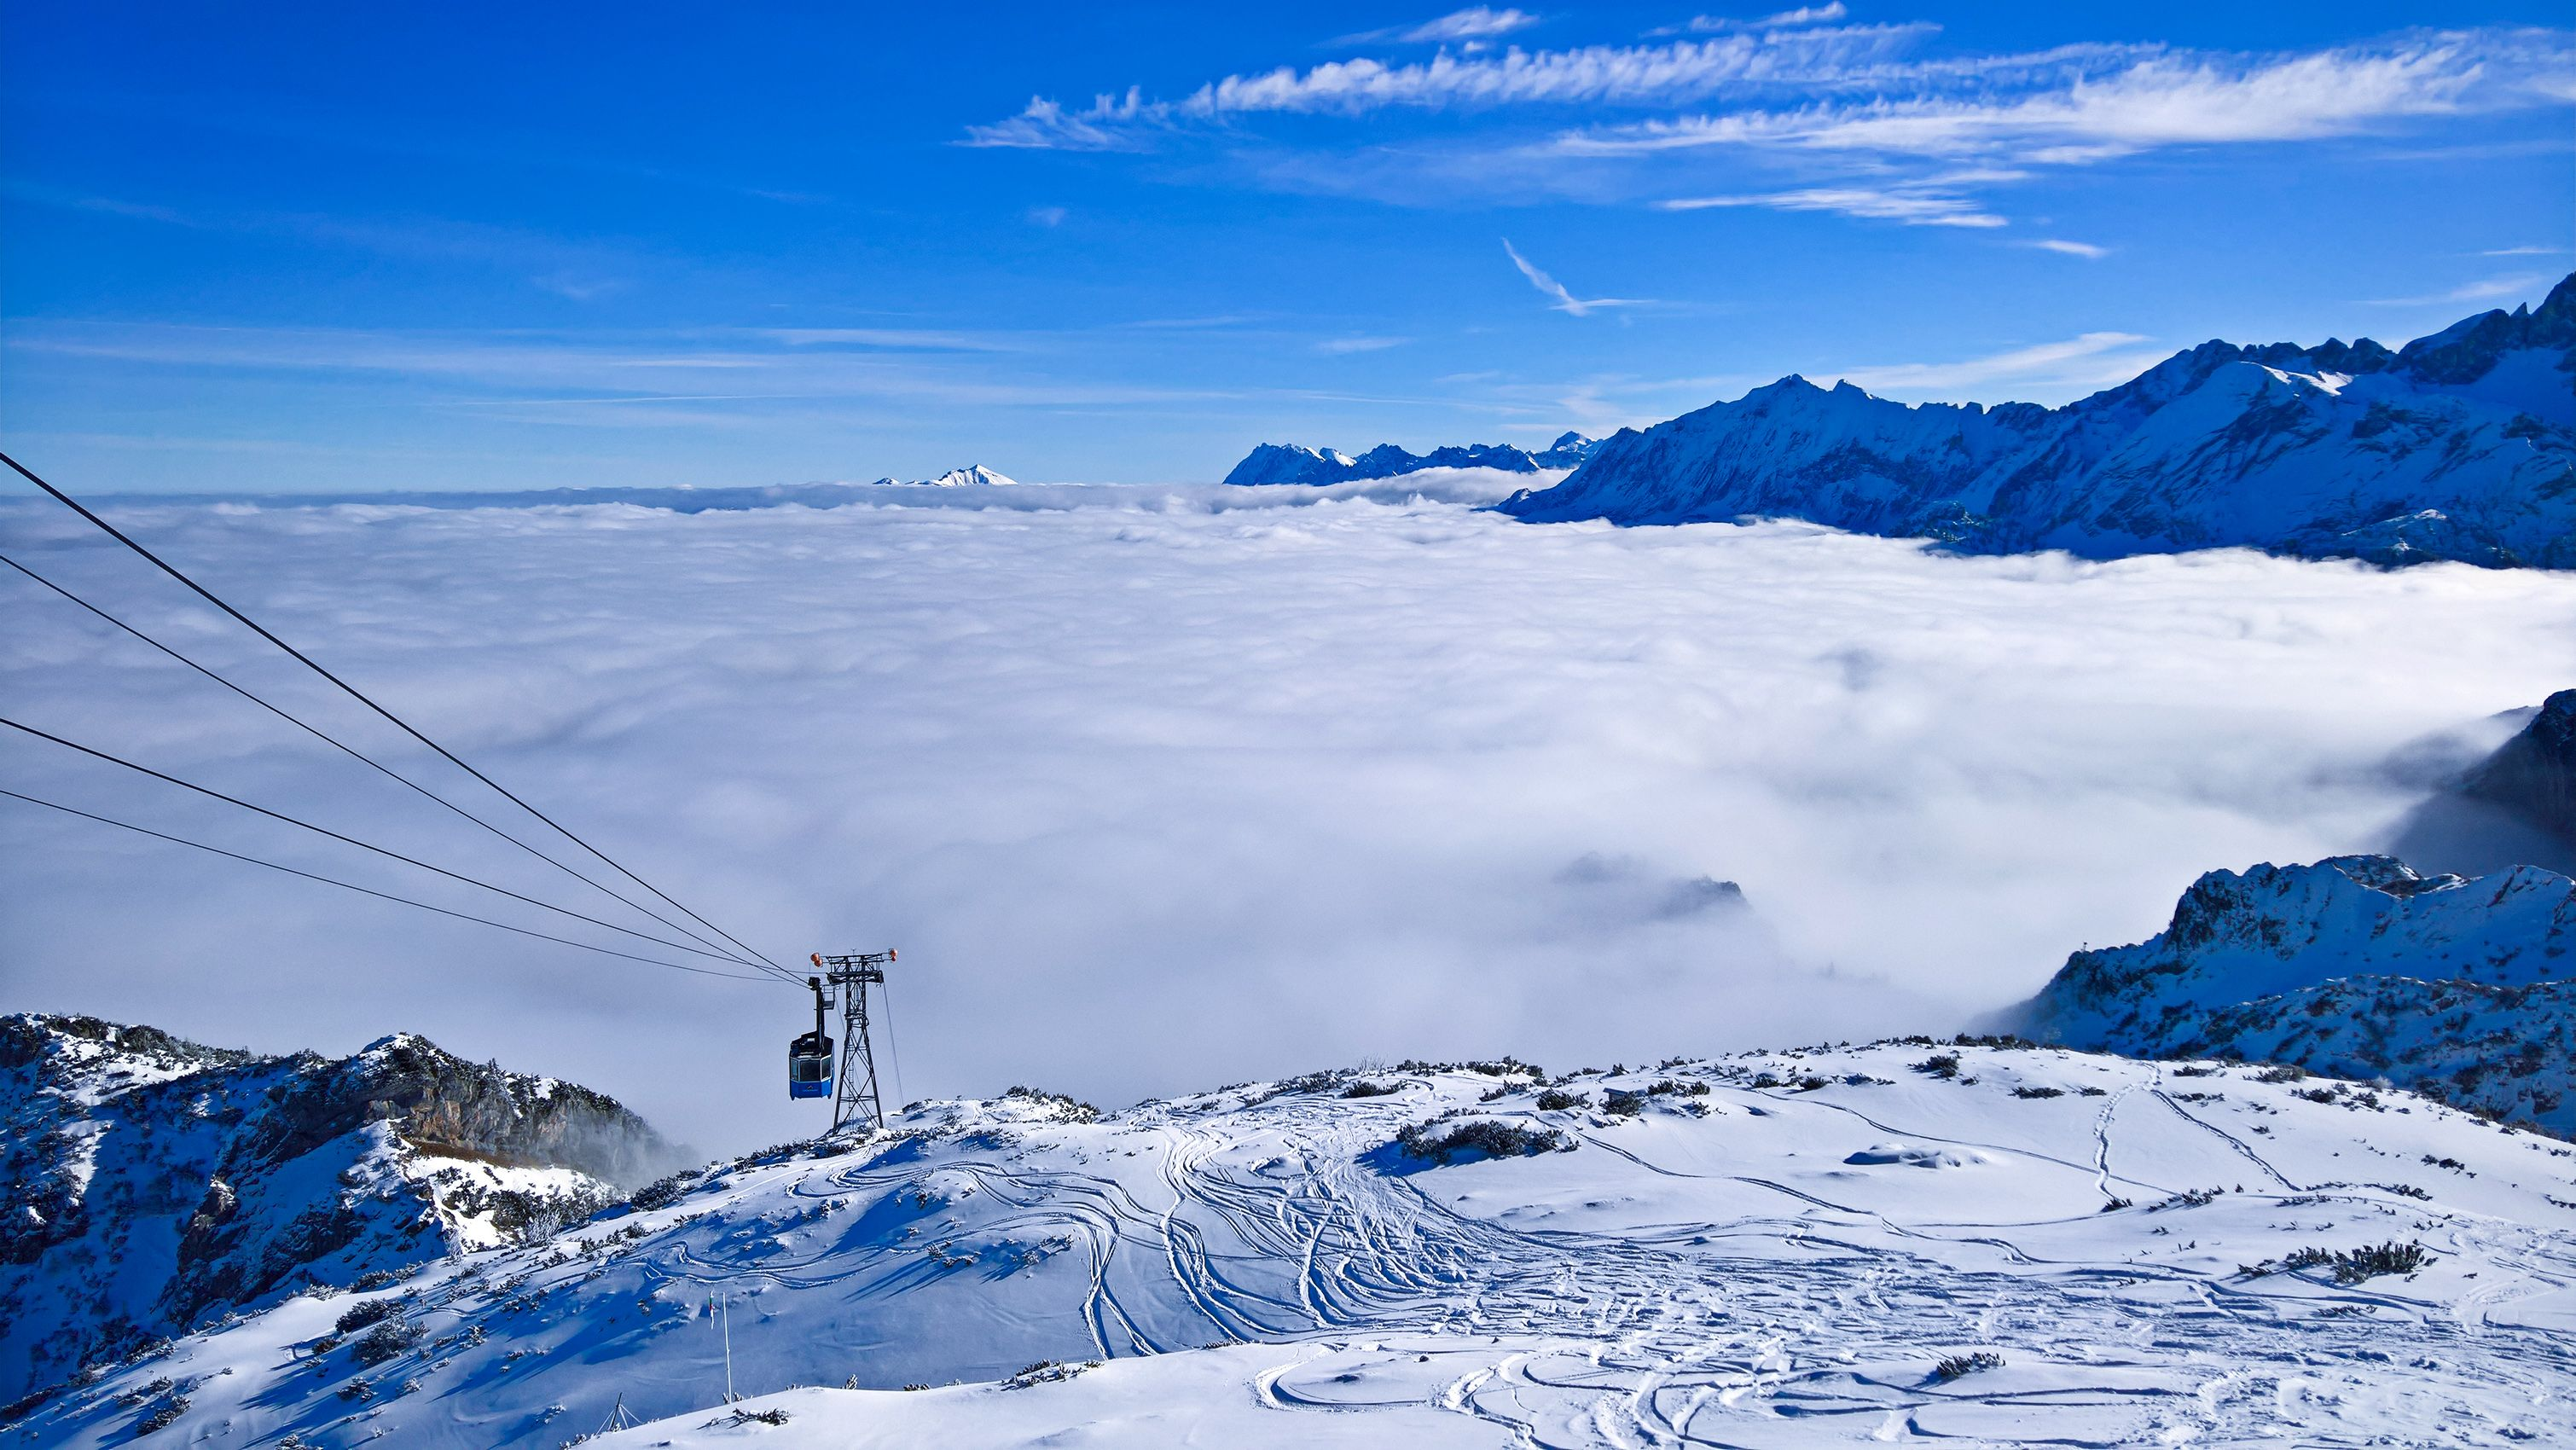 Garmisch under clouds and sunshine on the mountain. I'd rather stay here. #garmisch #bavaria #germany #heaven #clouds #sunny #skiing #cablecar